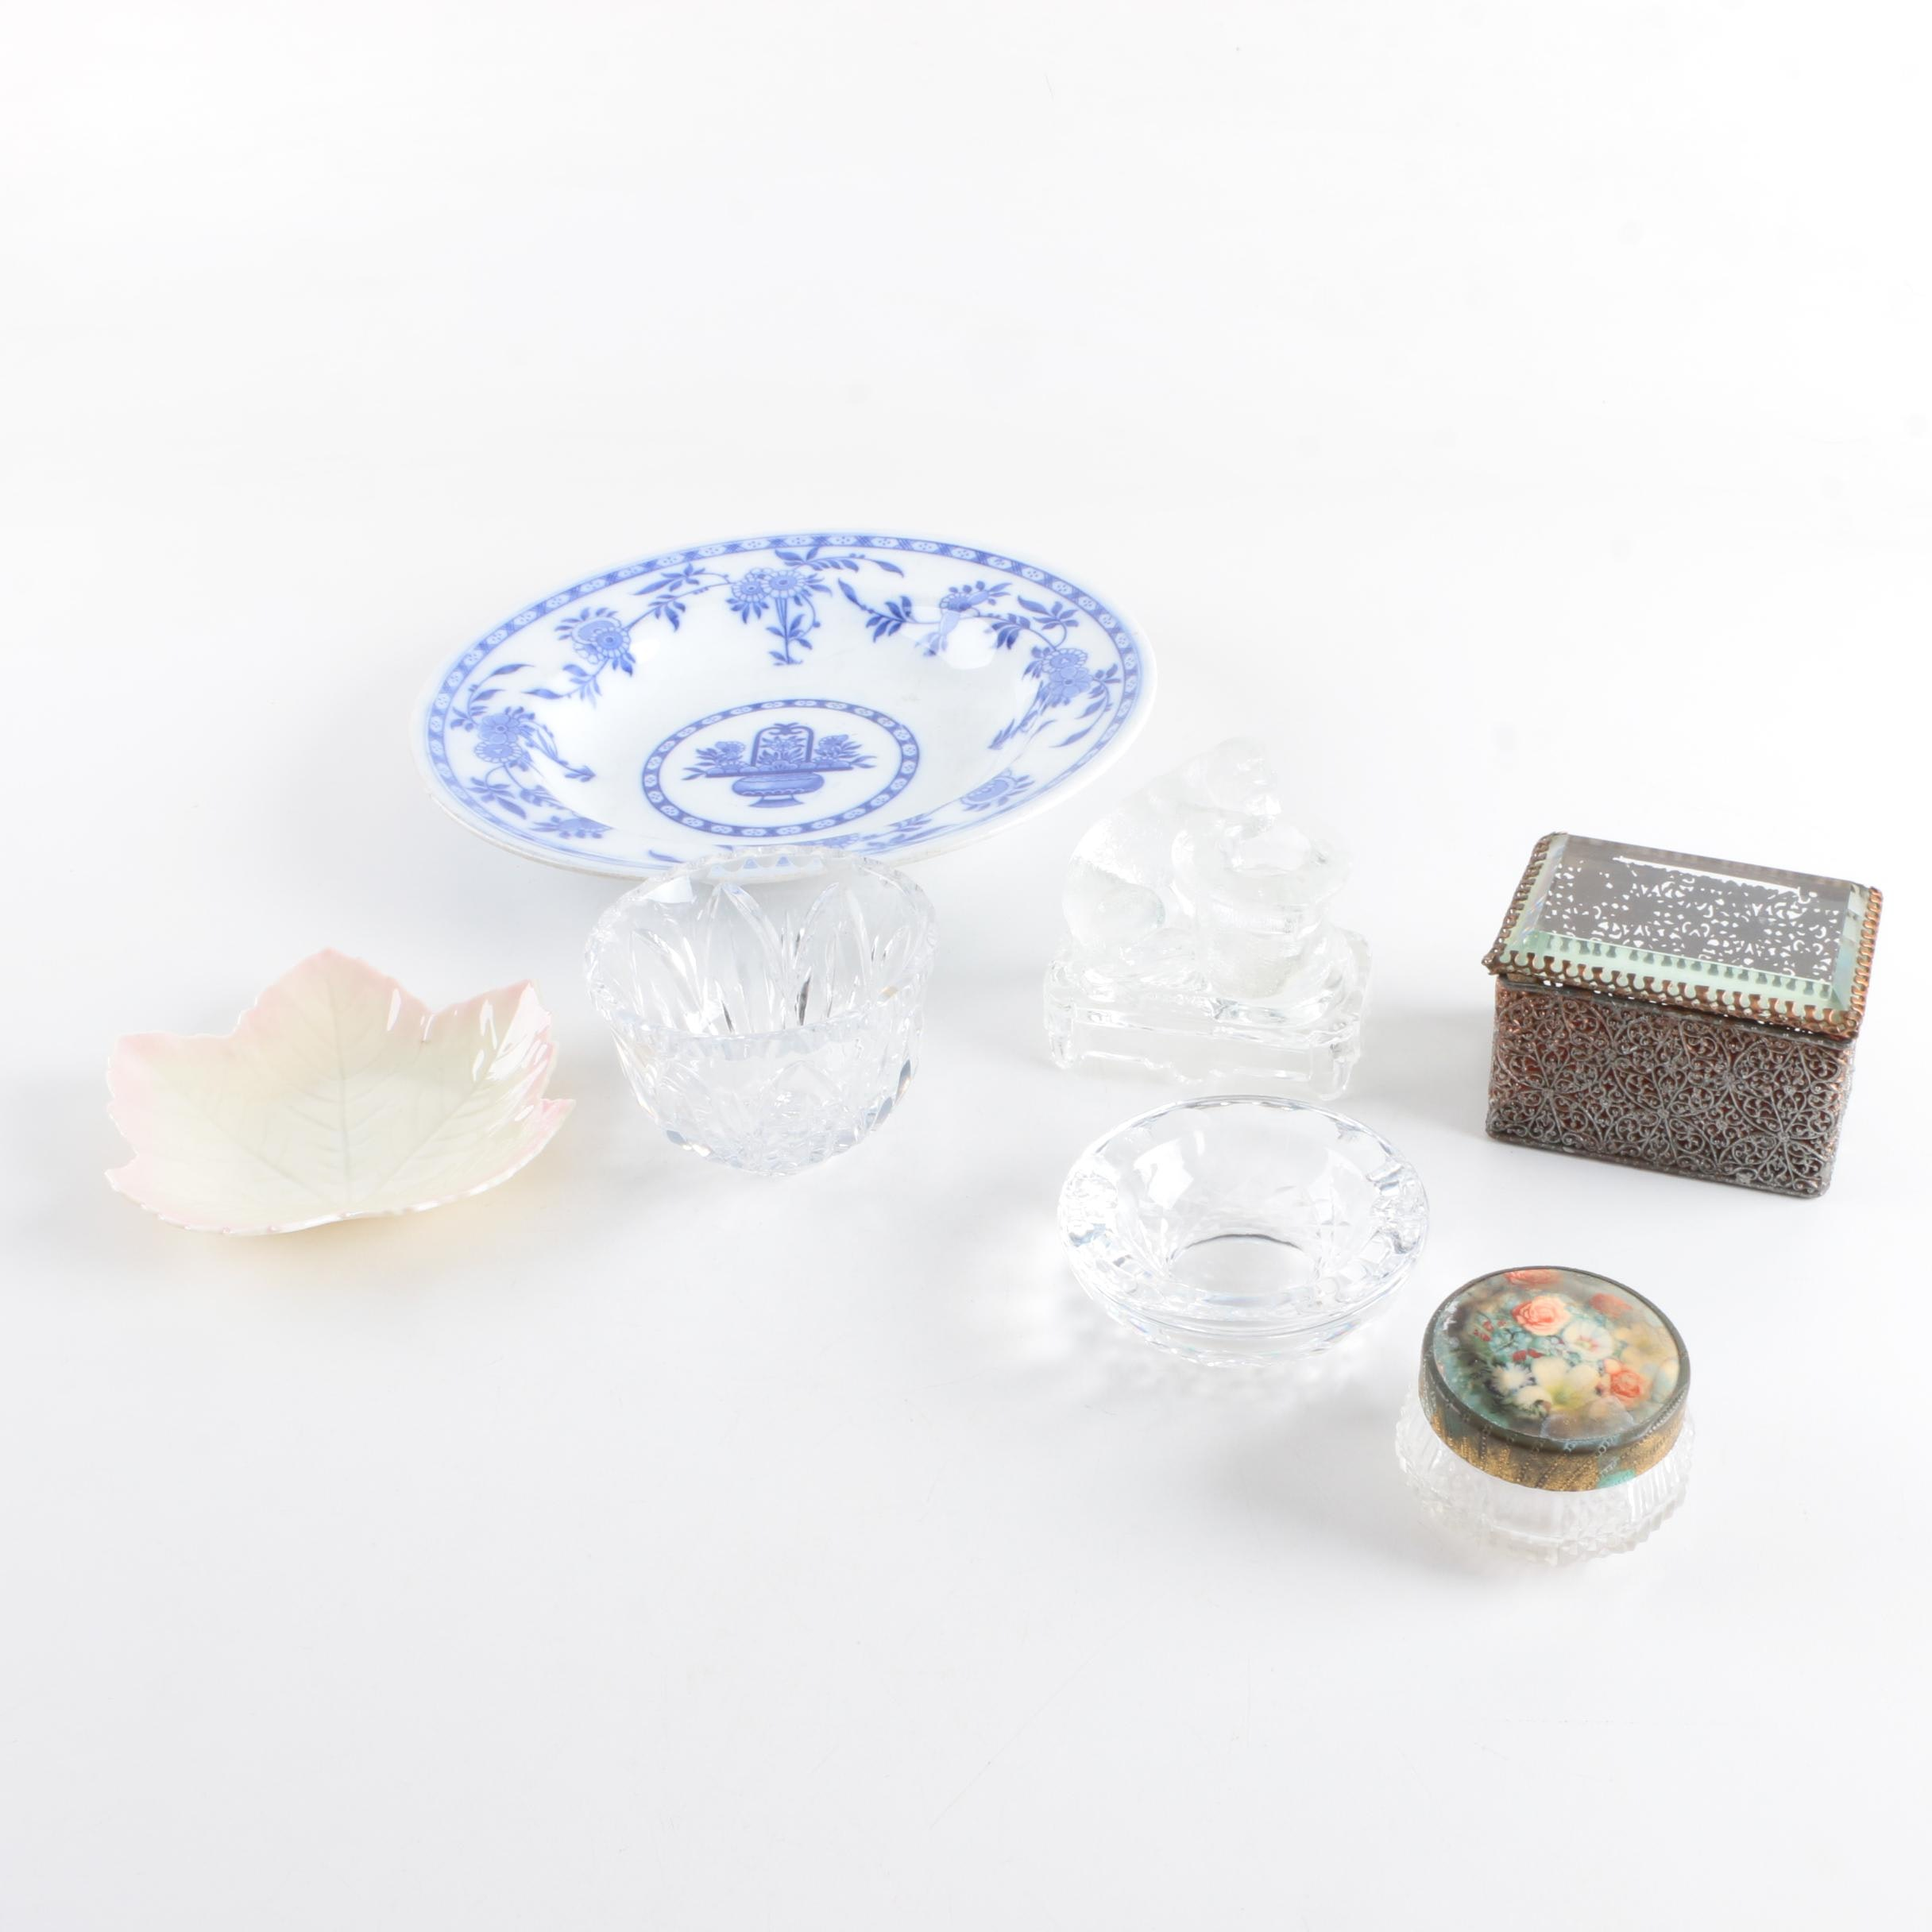 Assortment of Decorative Trinket Dishes Including Belleek and Delft